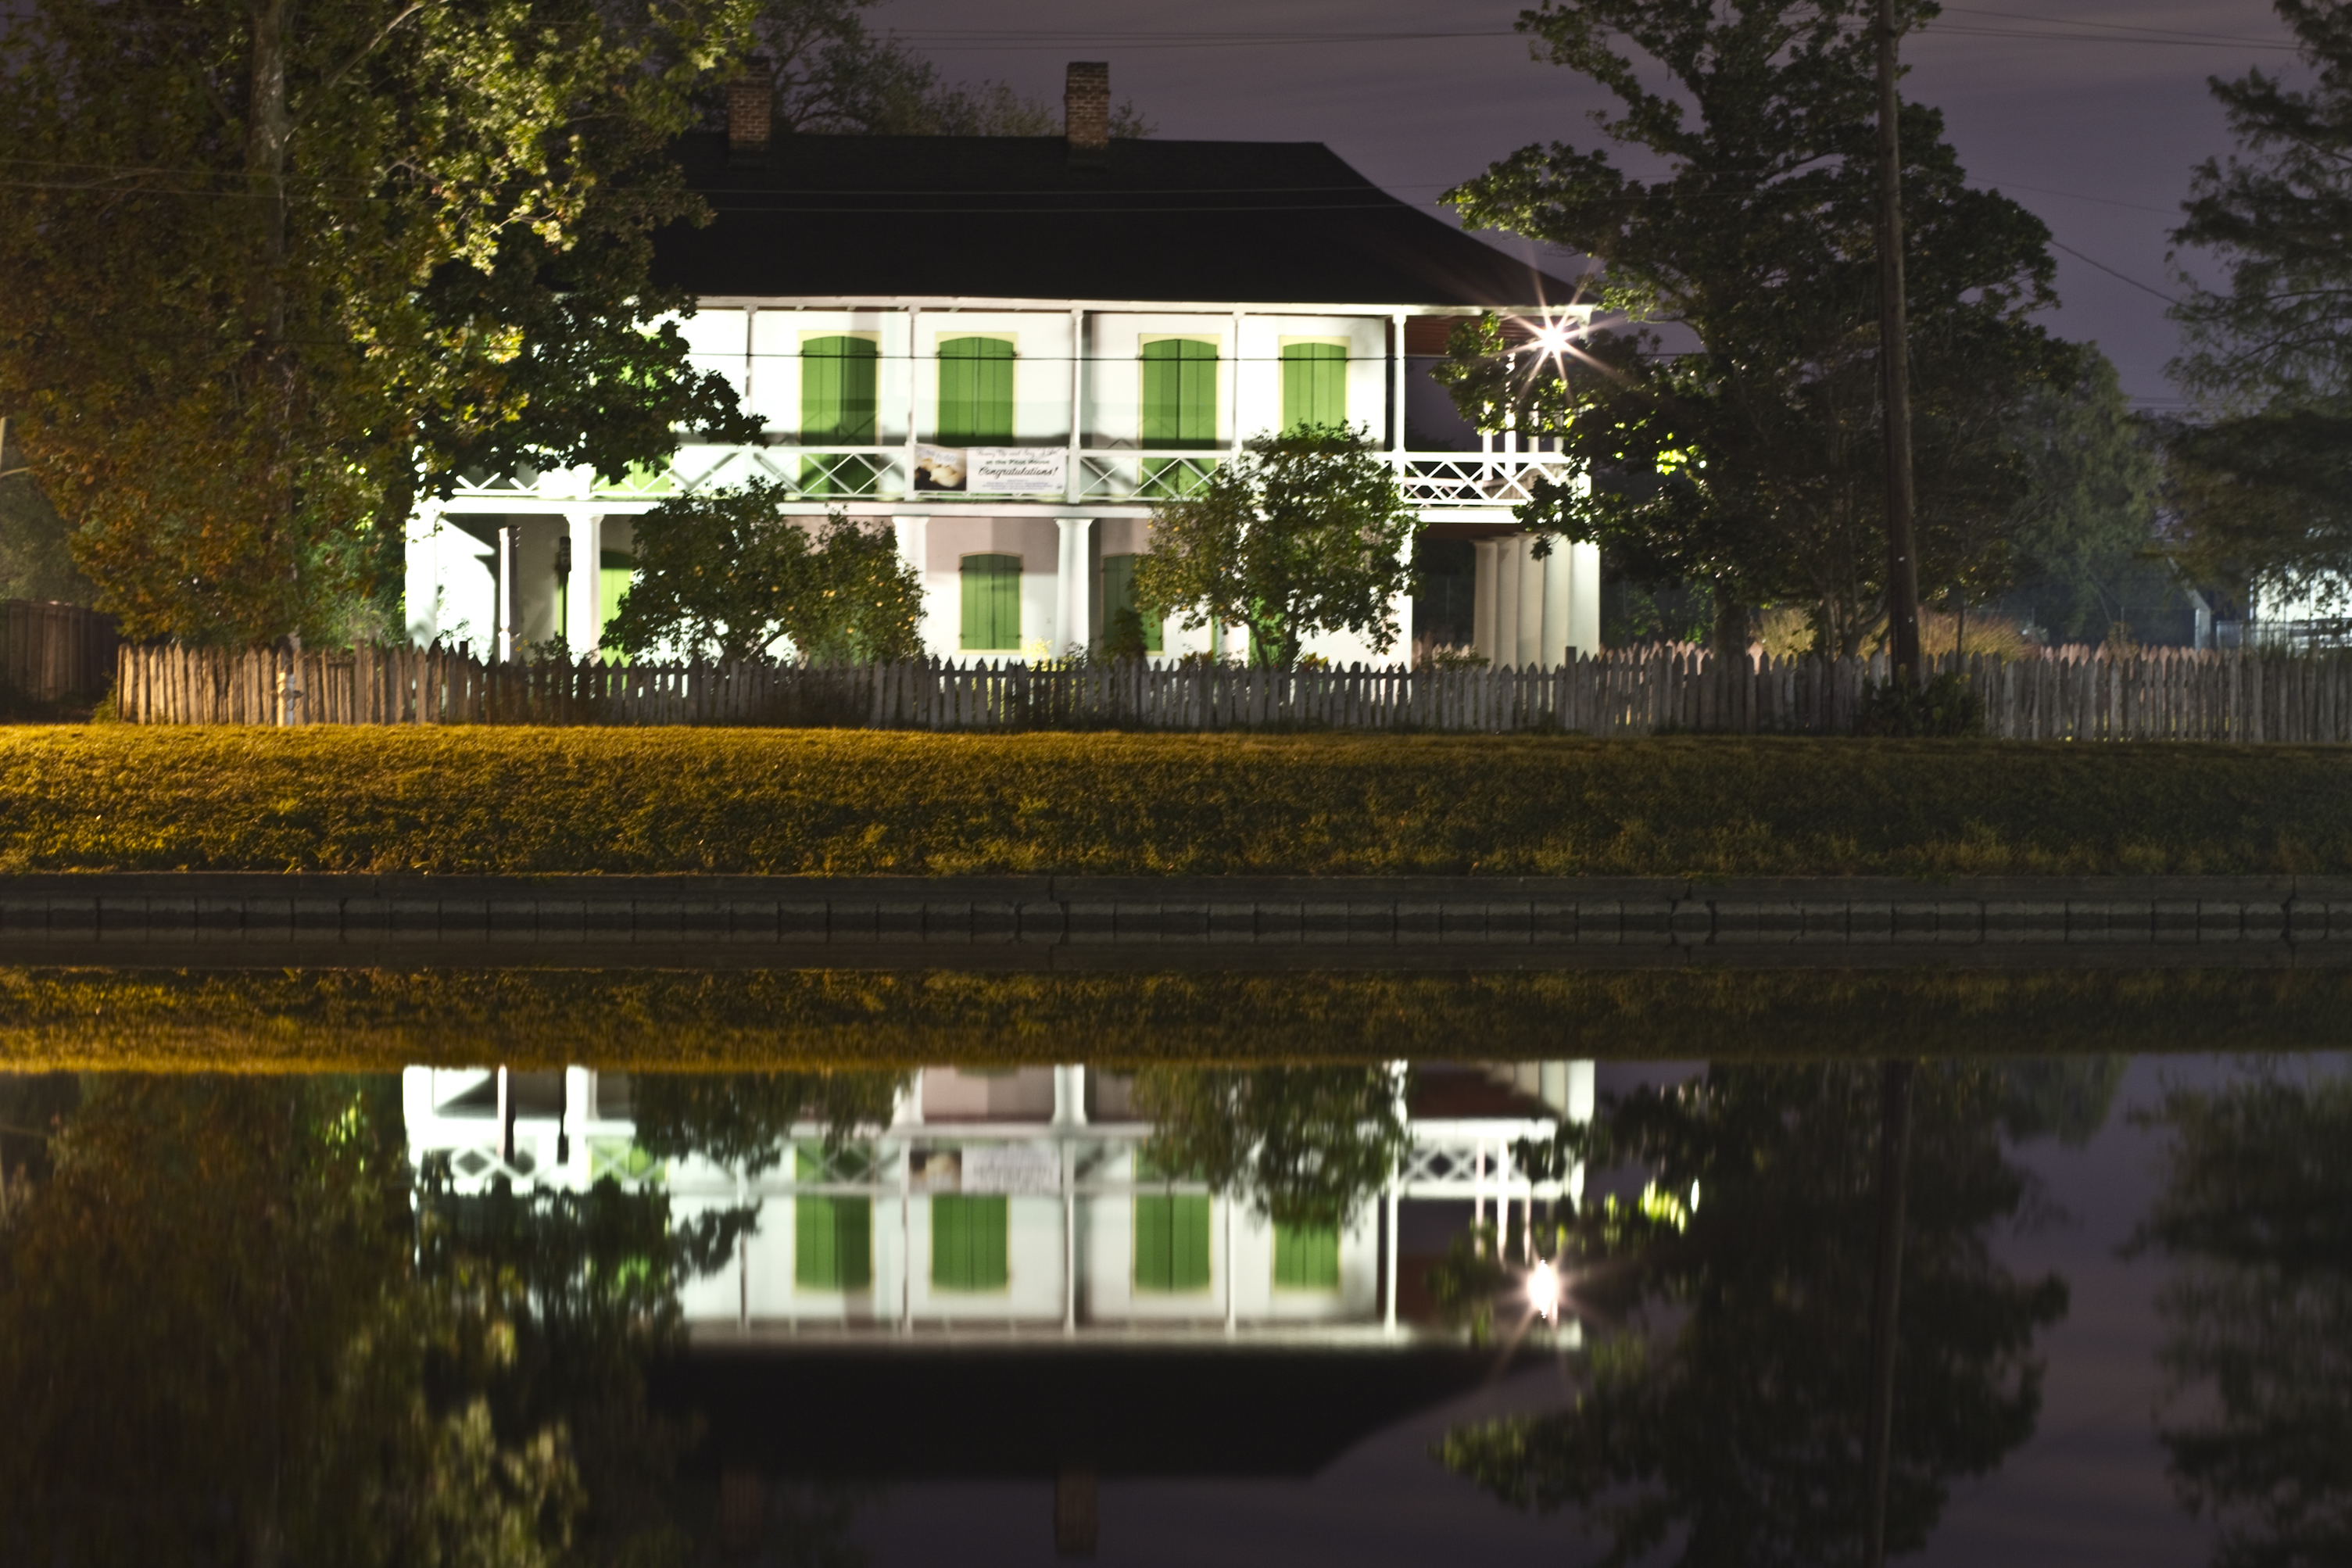 Pitot House is reflected in the waters of Bayou St. John.  It is easy to see why it is often used as a special events venue.